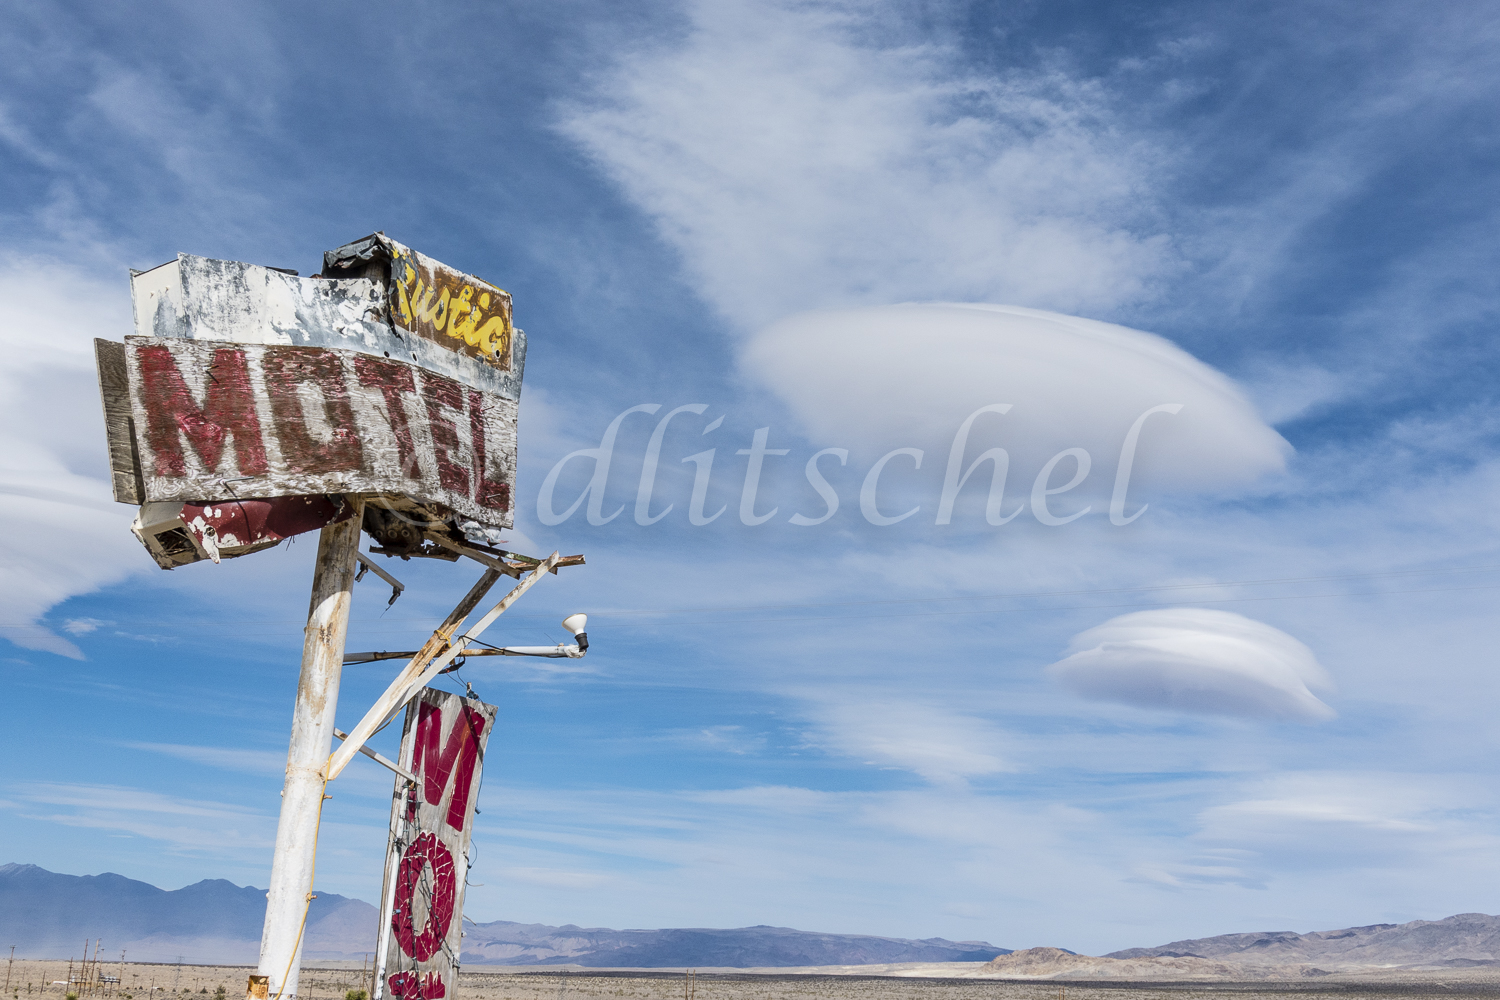 The Rustic Oasis Motel sign with a lenticular cloud formation behind it. The Rustic Oasis Motel is an American roadside attraction along California highway 395 in the Eastern Sierra. Lenticular clouds (Altocumulus lenticularis in Latin) are stationary clouds that form in the troposphere, typically in perpendicular alignment to the wind direction. They are often comparable in appearance to a lens or saucer. Because of their unique appearance, they have been brought forward as an explanation for some unidentified flying object UFO sightings.